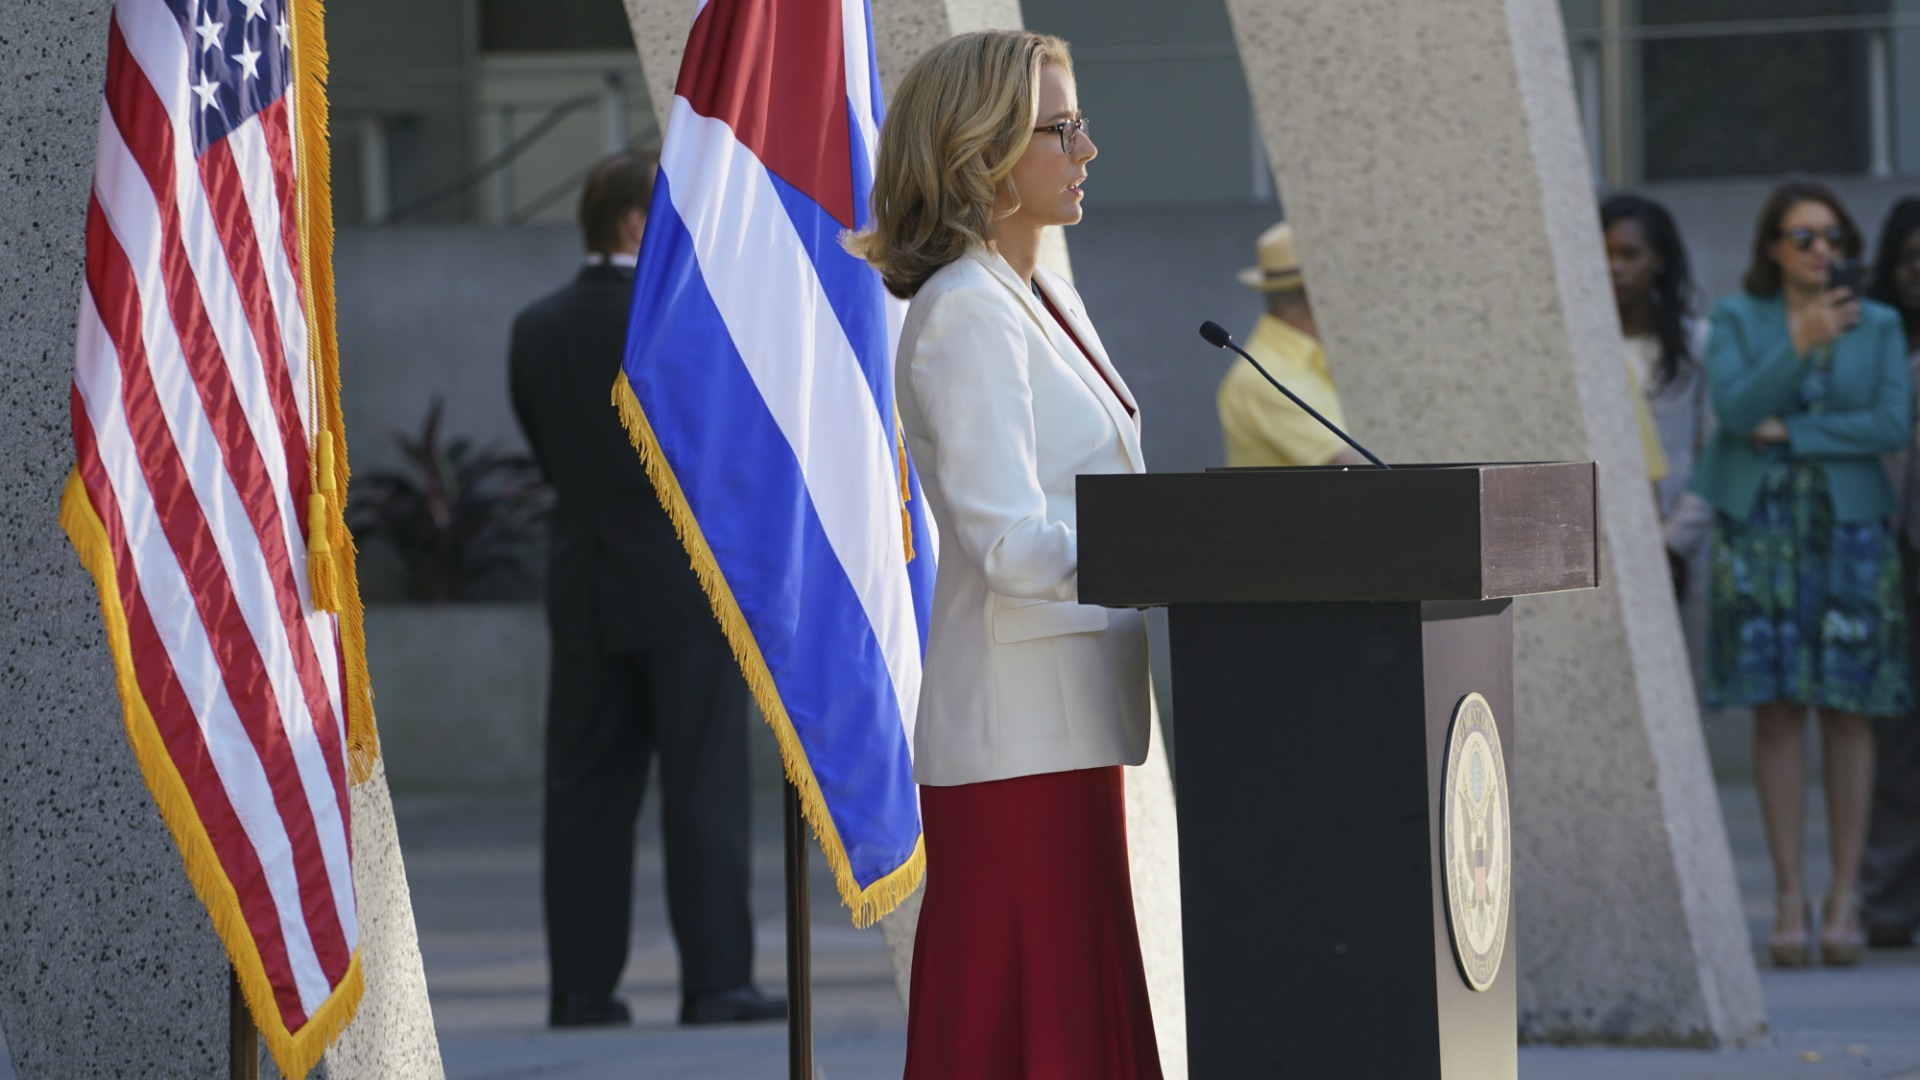 Bess made history by reopening the U.S. embassy in Cuba.